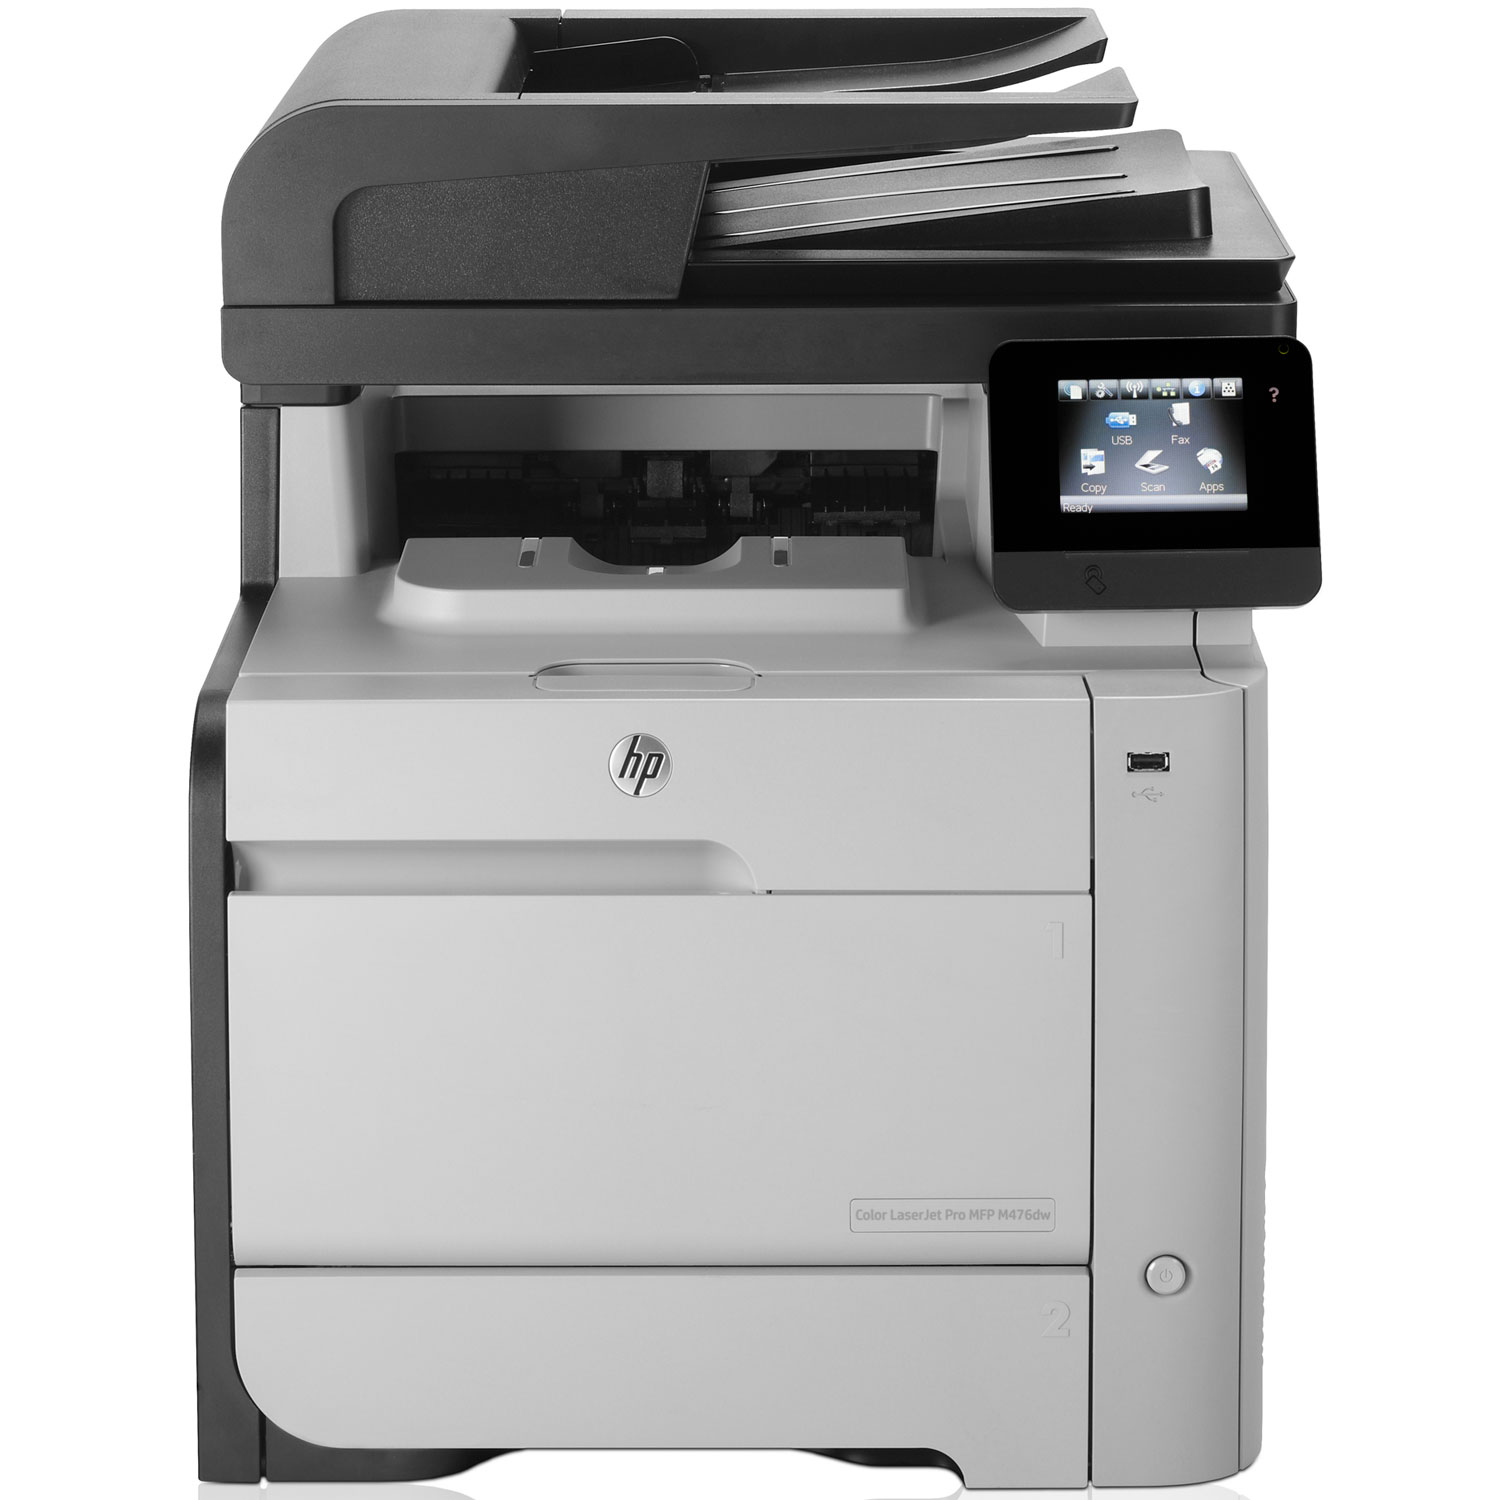 hp color laserjet pro m476dw cf387a imprimante multifonction hp sur. Black Bedroom Furniture Sets. Home Design Ideas